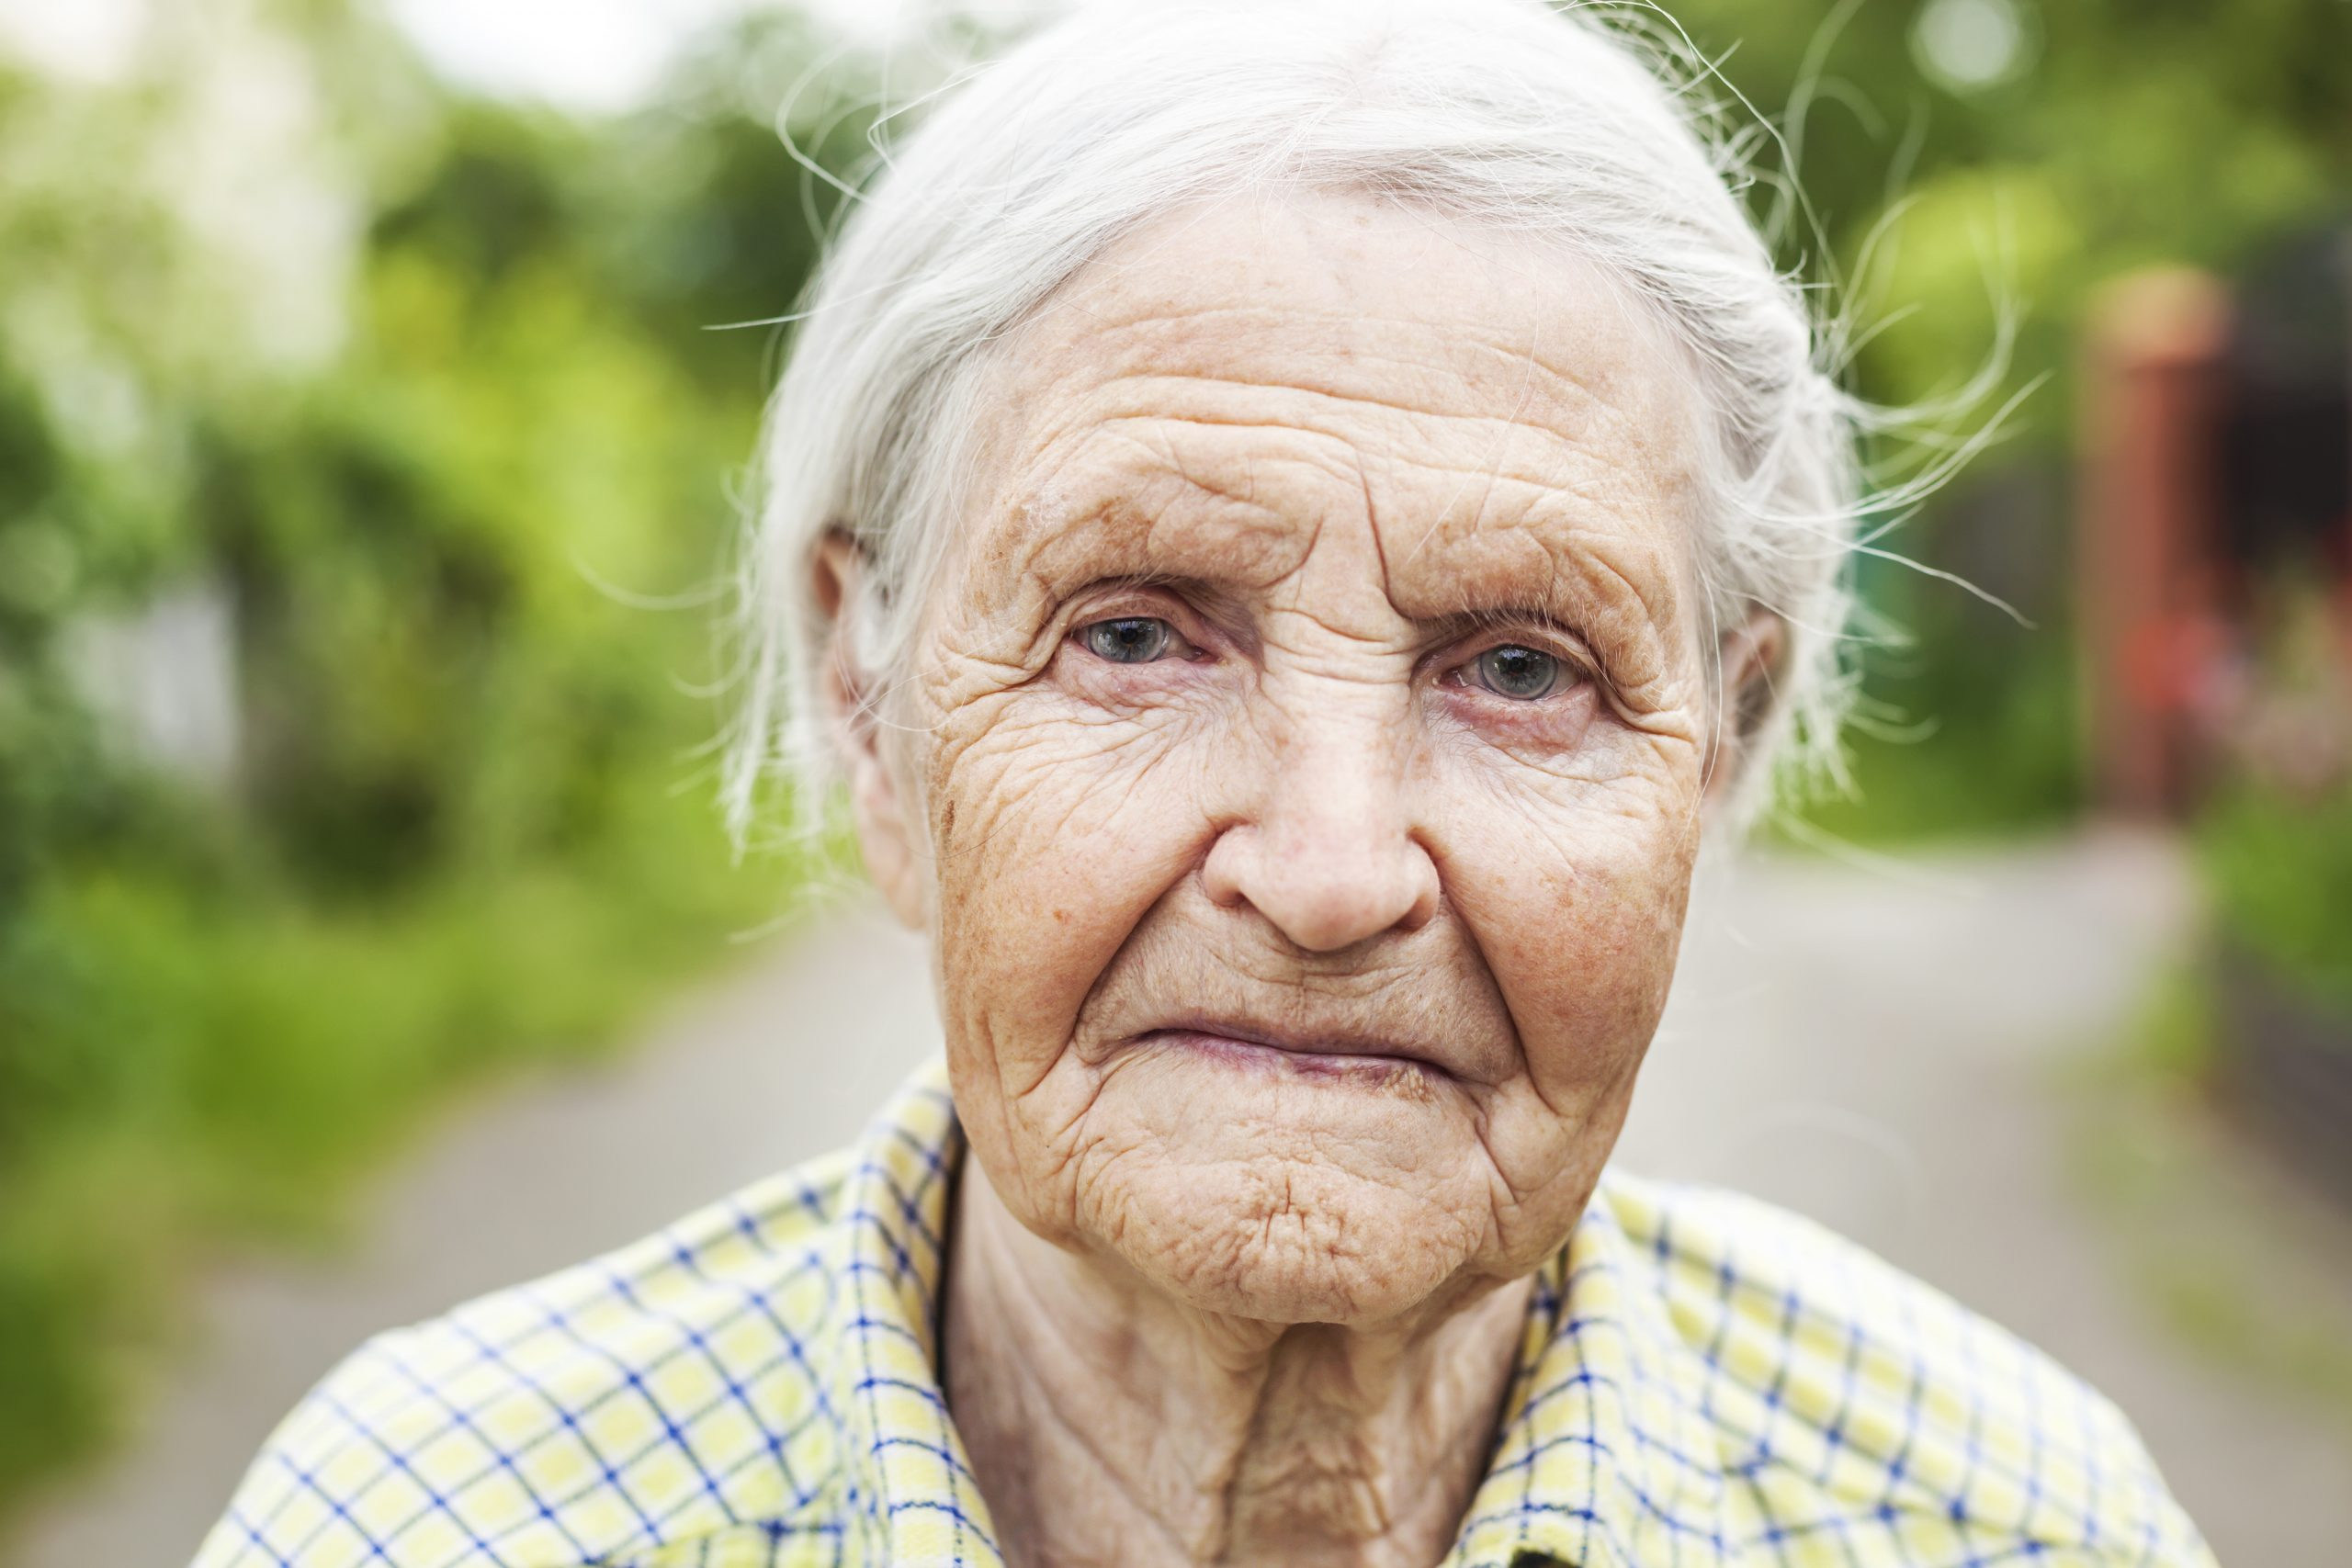 What Are the Most Common Health Problems in Old Age?